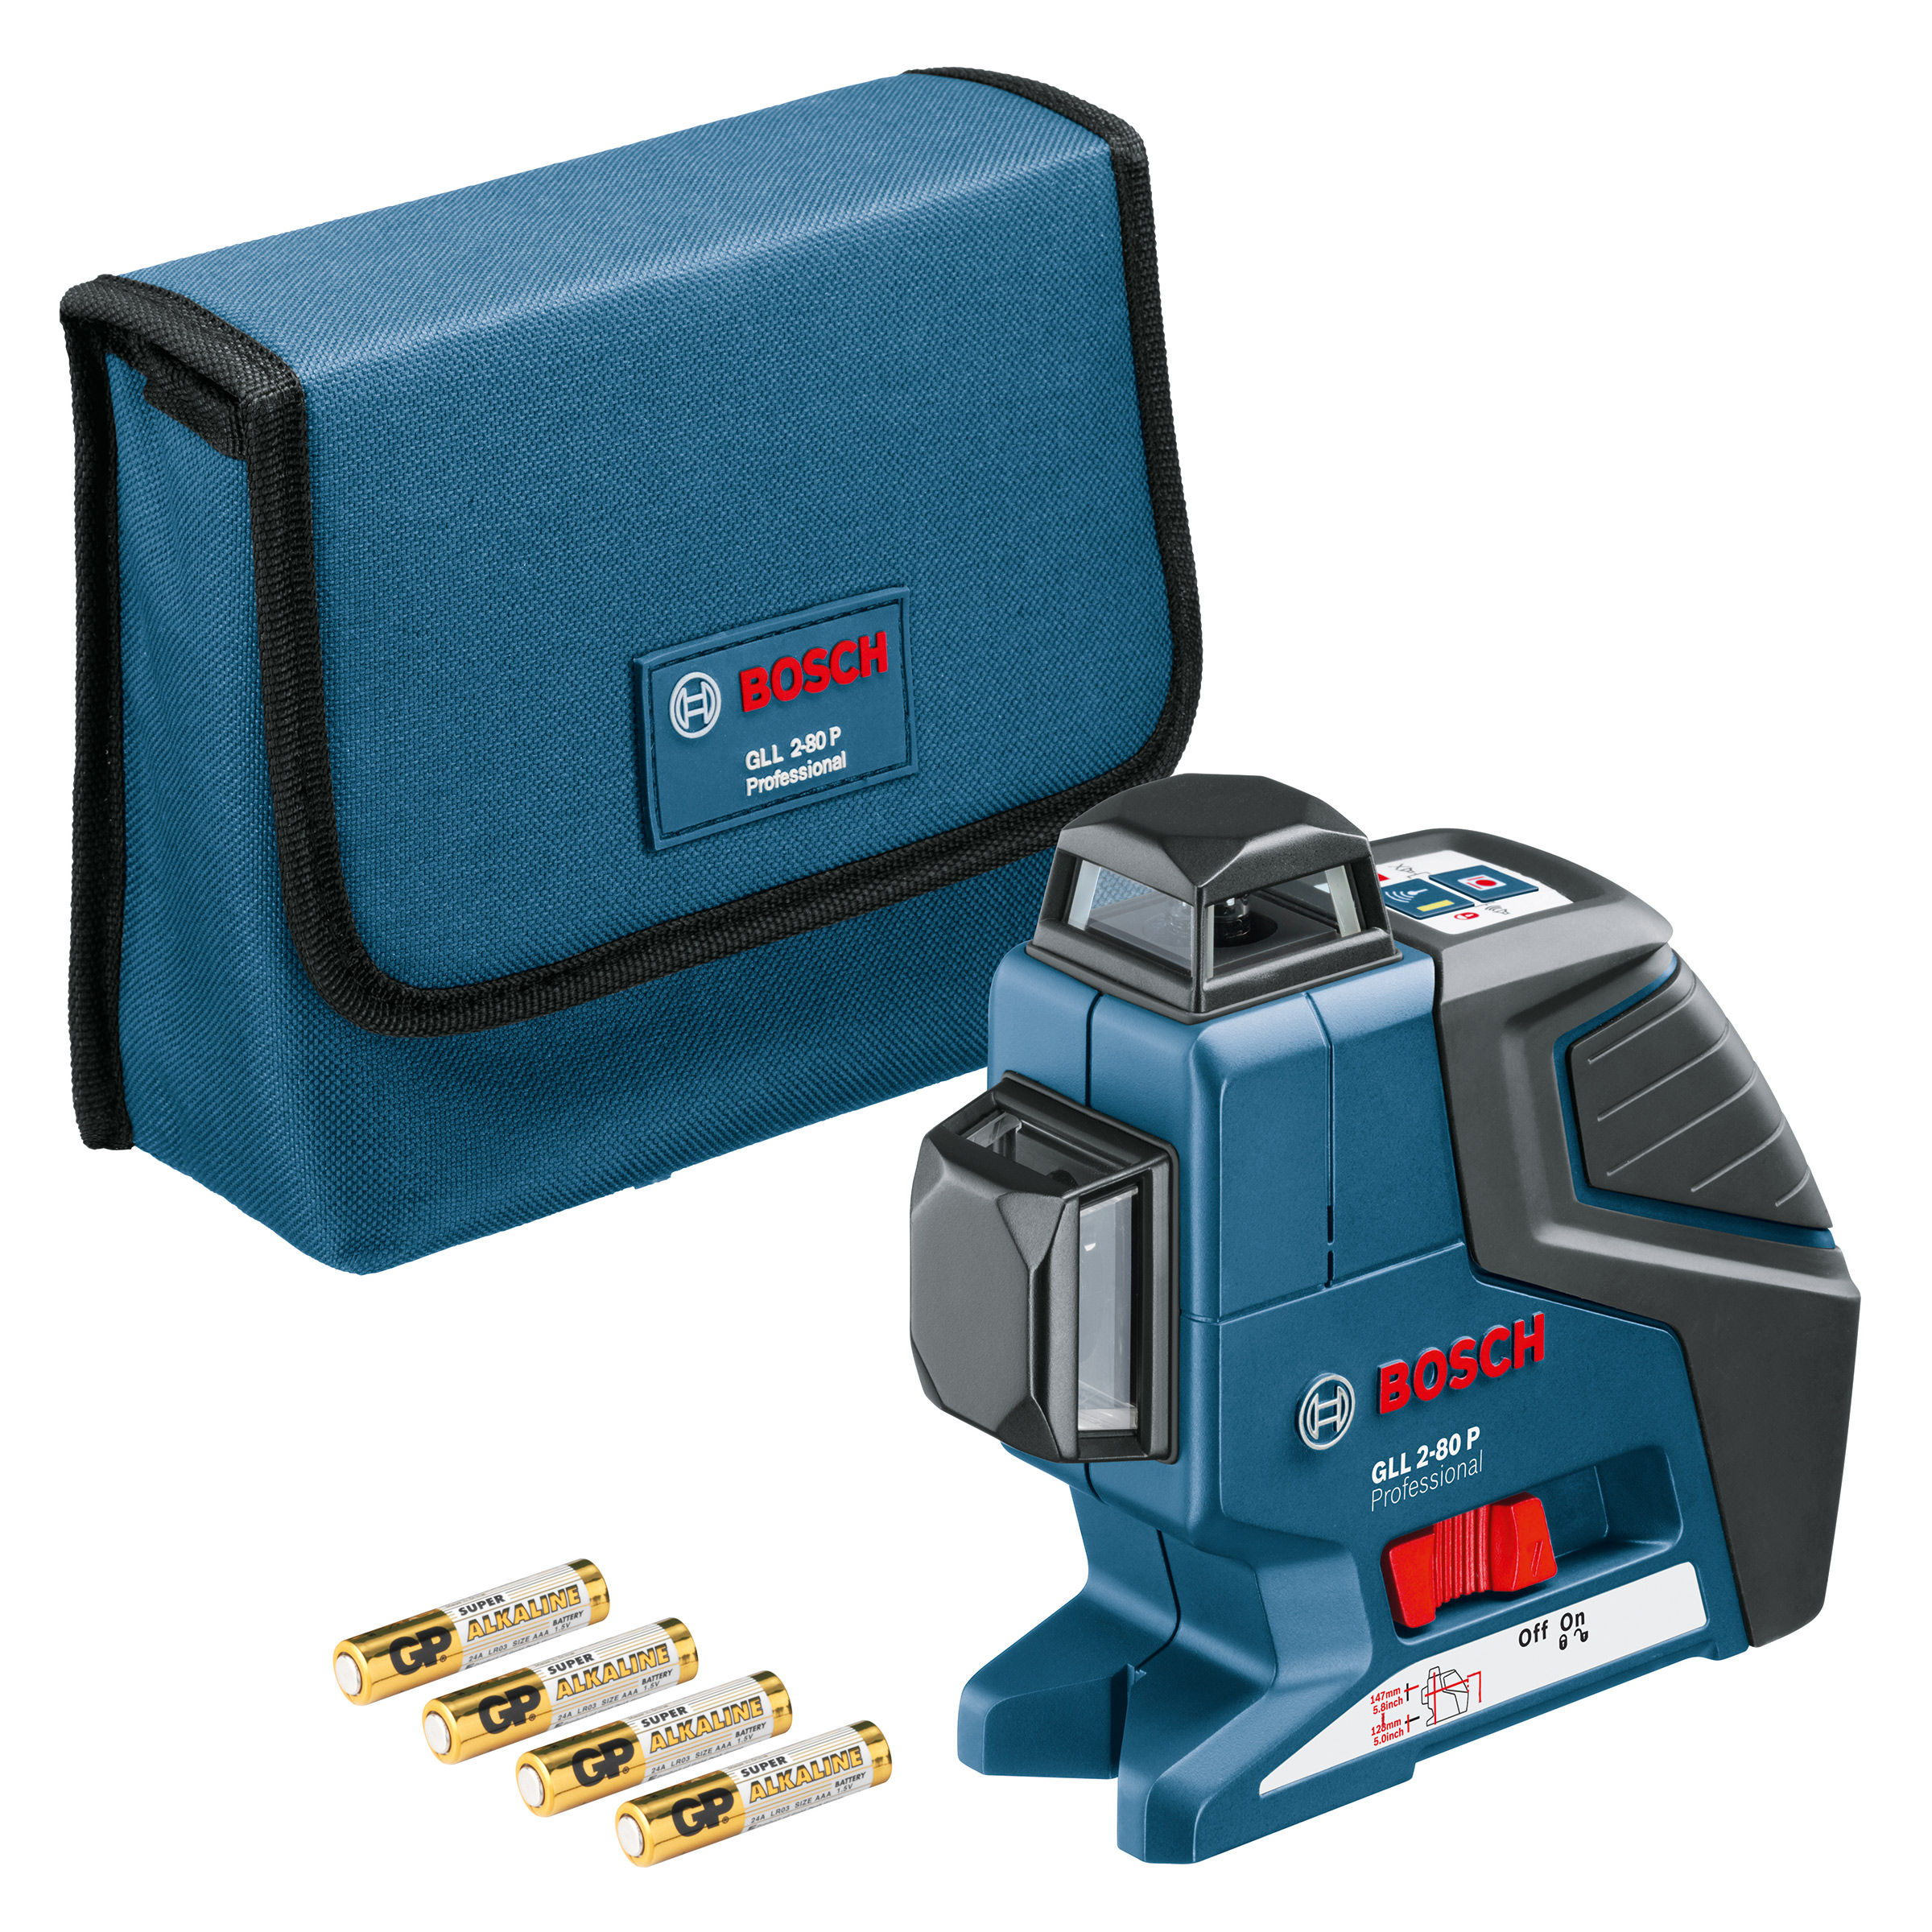 Toolstop Bosch Gll2 80p 360 Degree Vertical And Horizontal Line Gll 3 15 Laser Level Mini